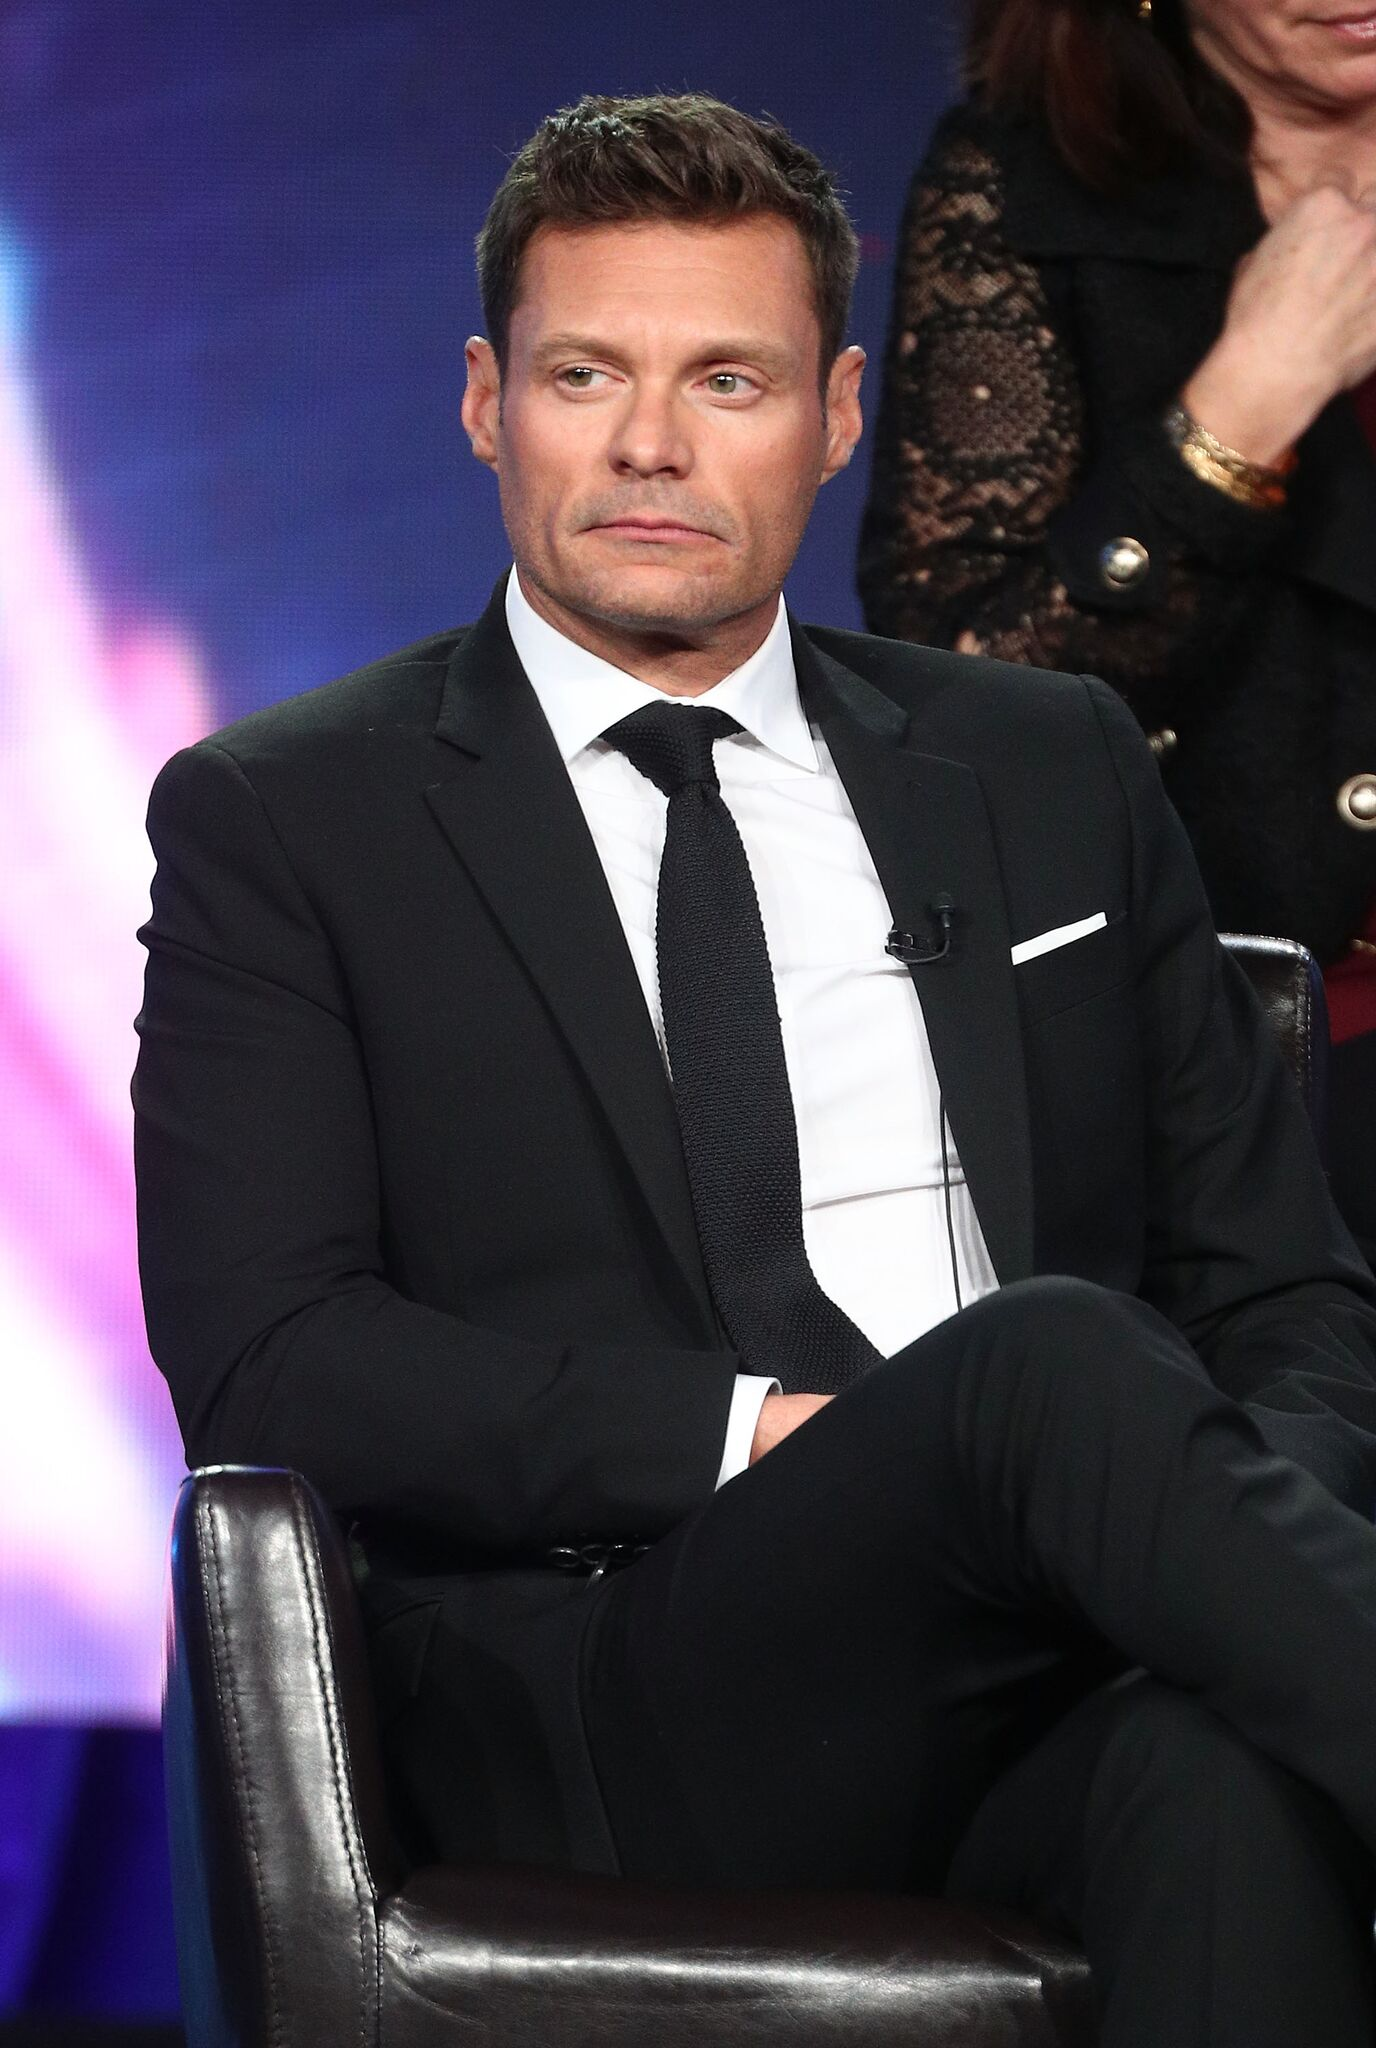 Ryan Seacrest of the television show American Idol speaks onstage during the ABC Television/Disney portion of the 2018 Winter Television Critics Association Press Tour | Getty Images